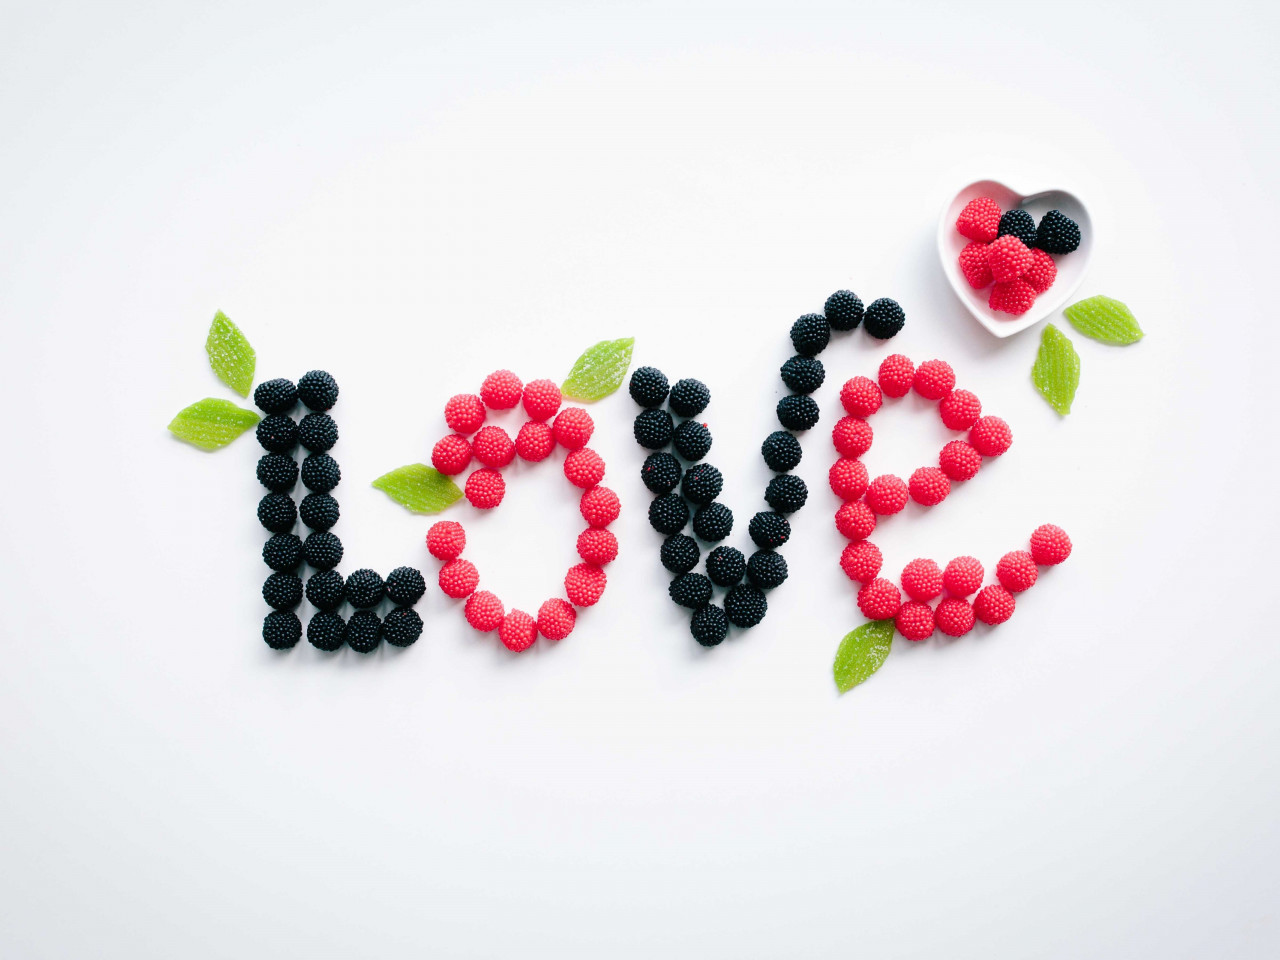 Love message with fruits | 1280x960 wallpaper